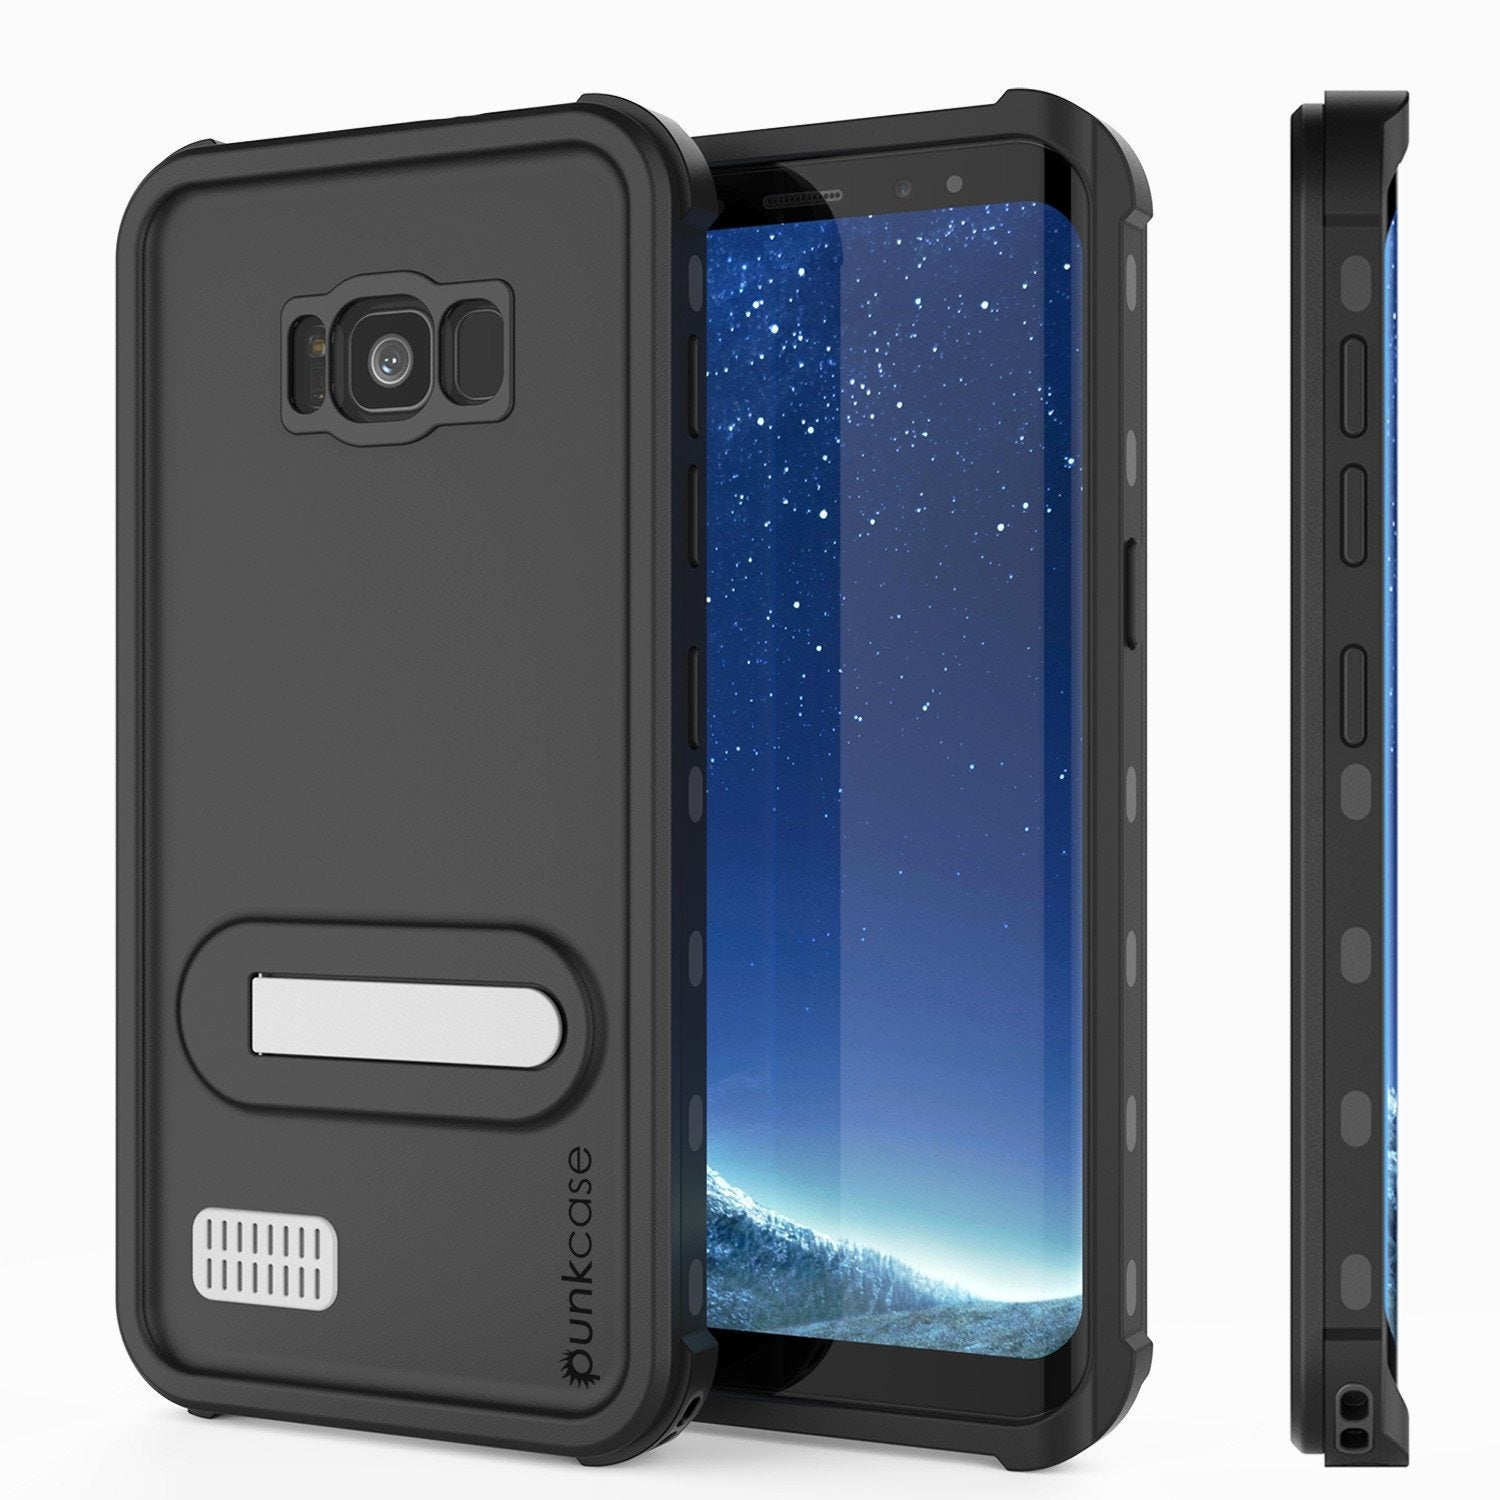 finest selection 4a4b2 02250 Galaxy S8 Plus Waterproof Case, Punkcase [KickStud Series] [Slim Fit] [IP68  Certified] [Shockproof] [Snowproof] Armor Cover [BLACK]